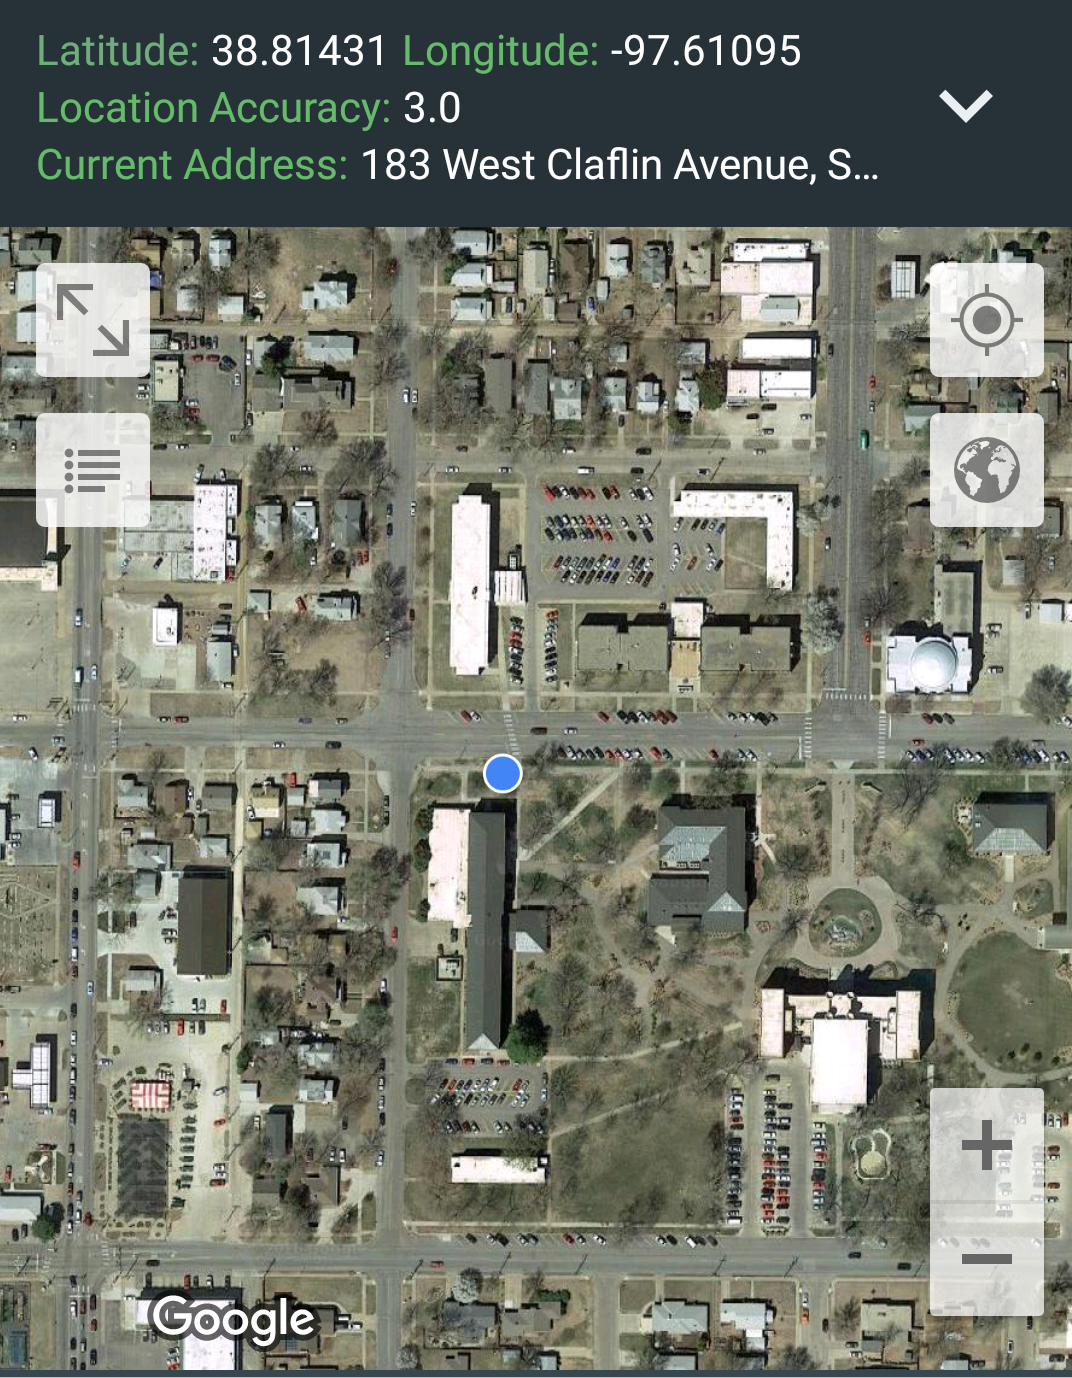 Here's the location on an aerial image.